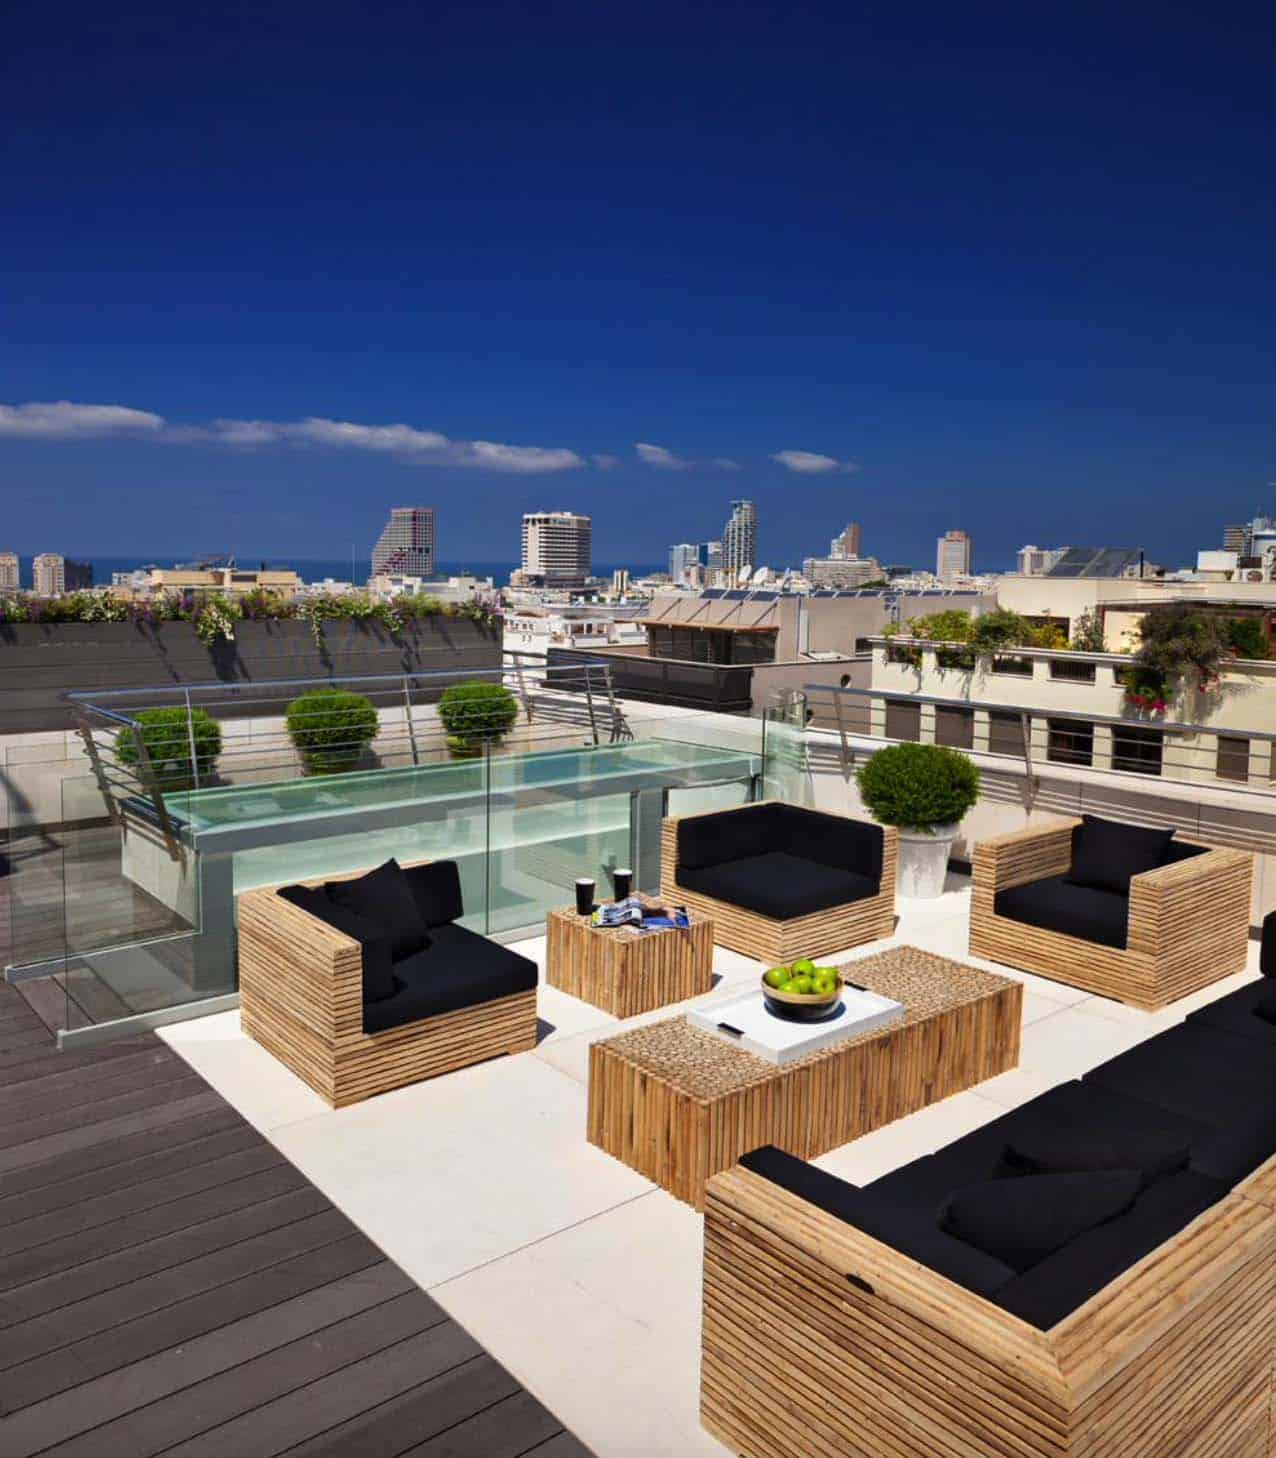 27 Inspiring Rooftop Terrace Design Ideas We Found on ...